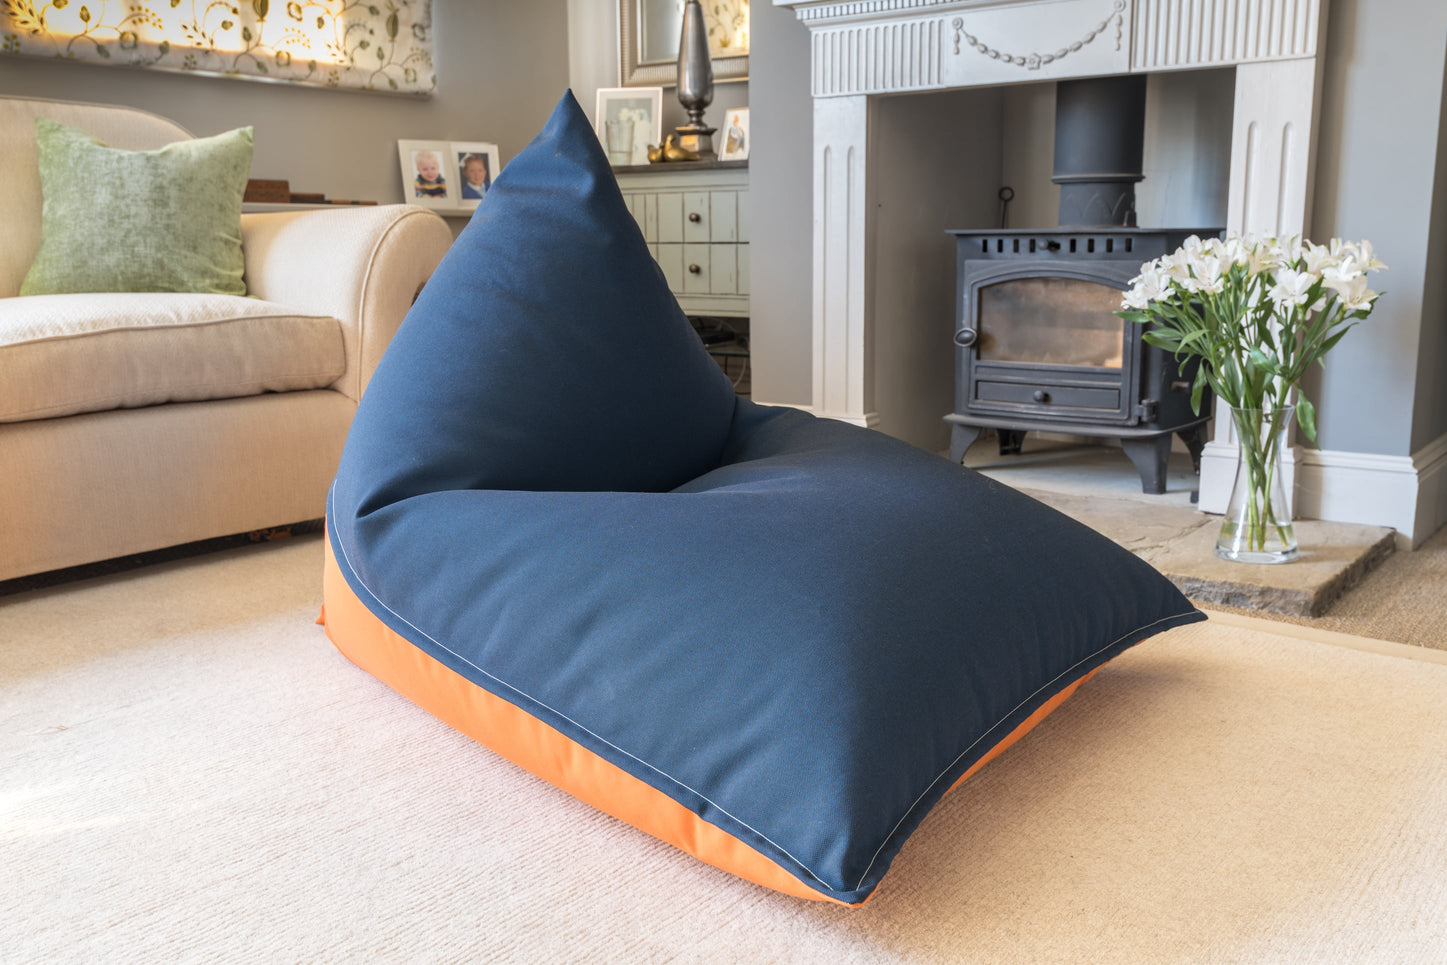 Adult Bean Bag Lounger in Orange and Navy armadillosun